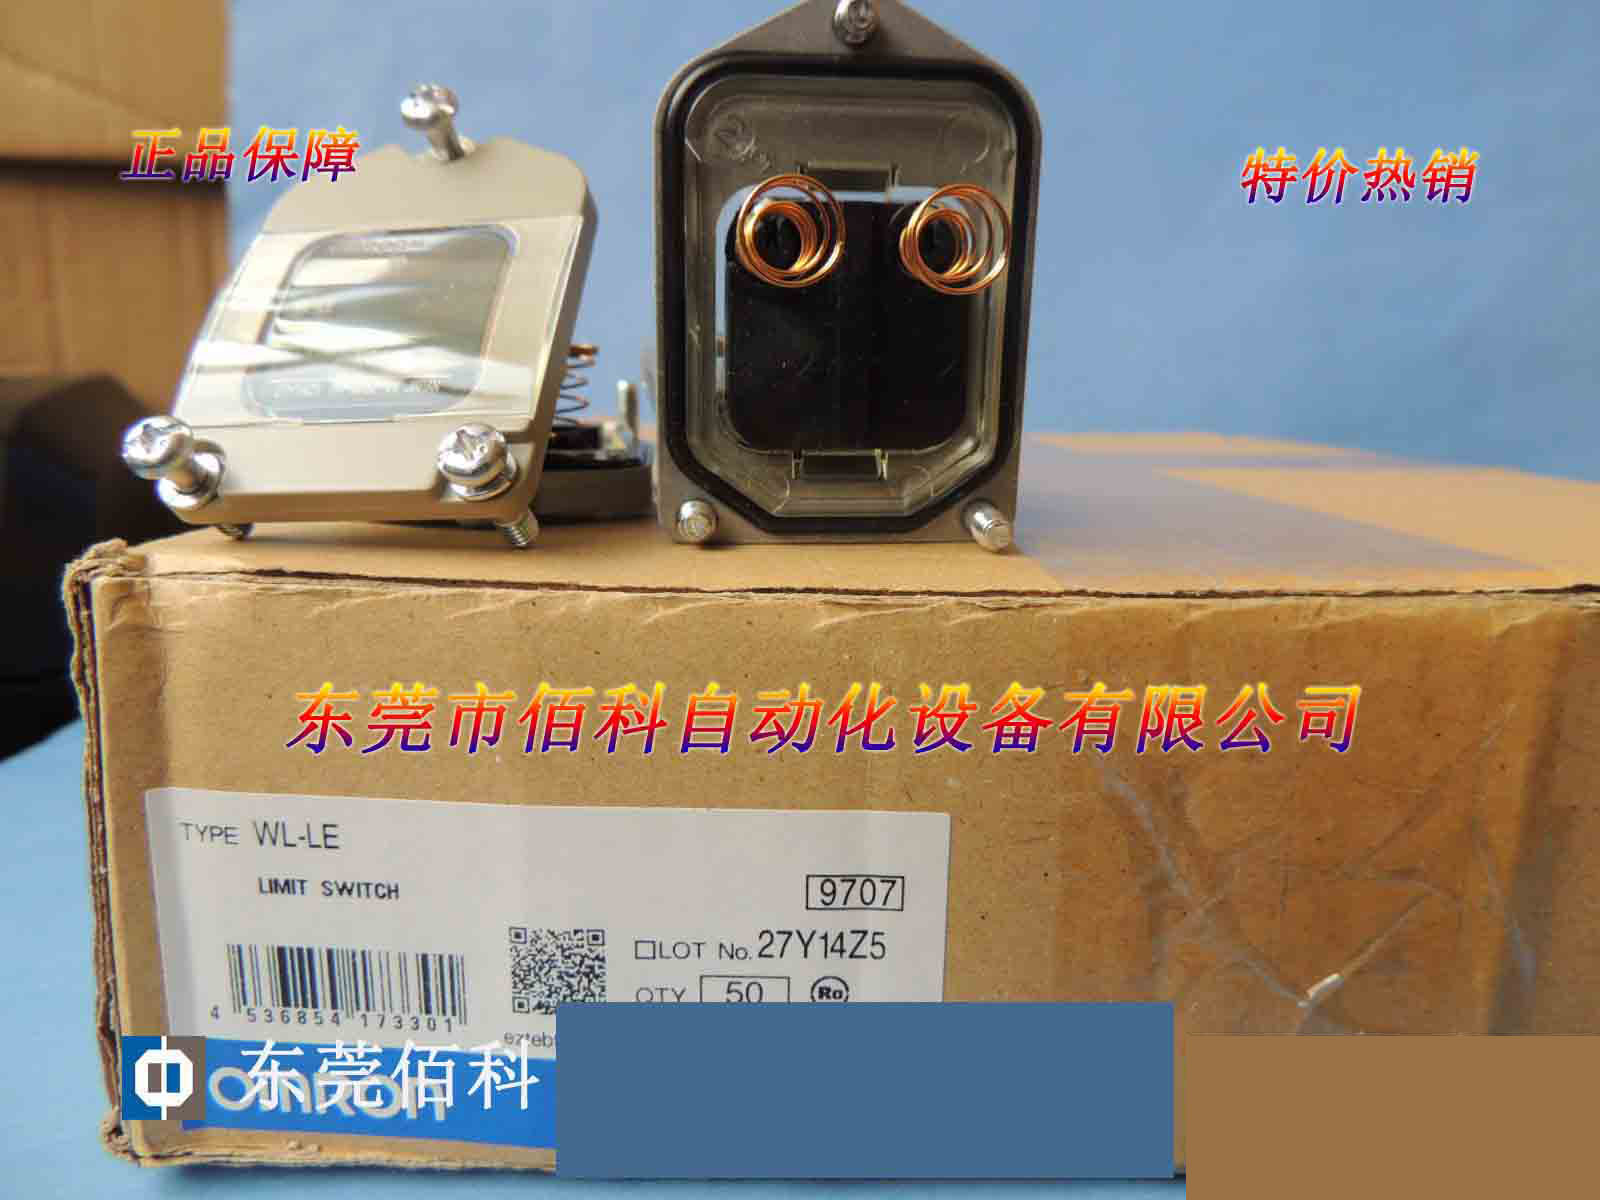 Special price new original Omron travel switch accessories WL-LESpecial price new original Omron travel switch accessories WL-LE